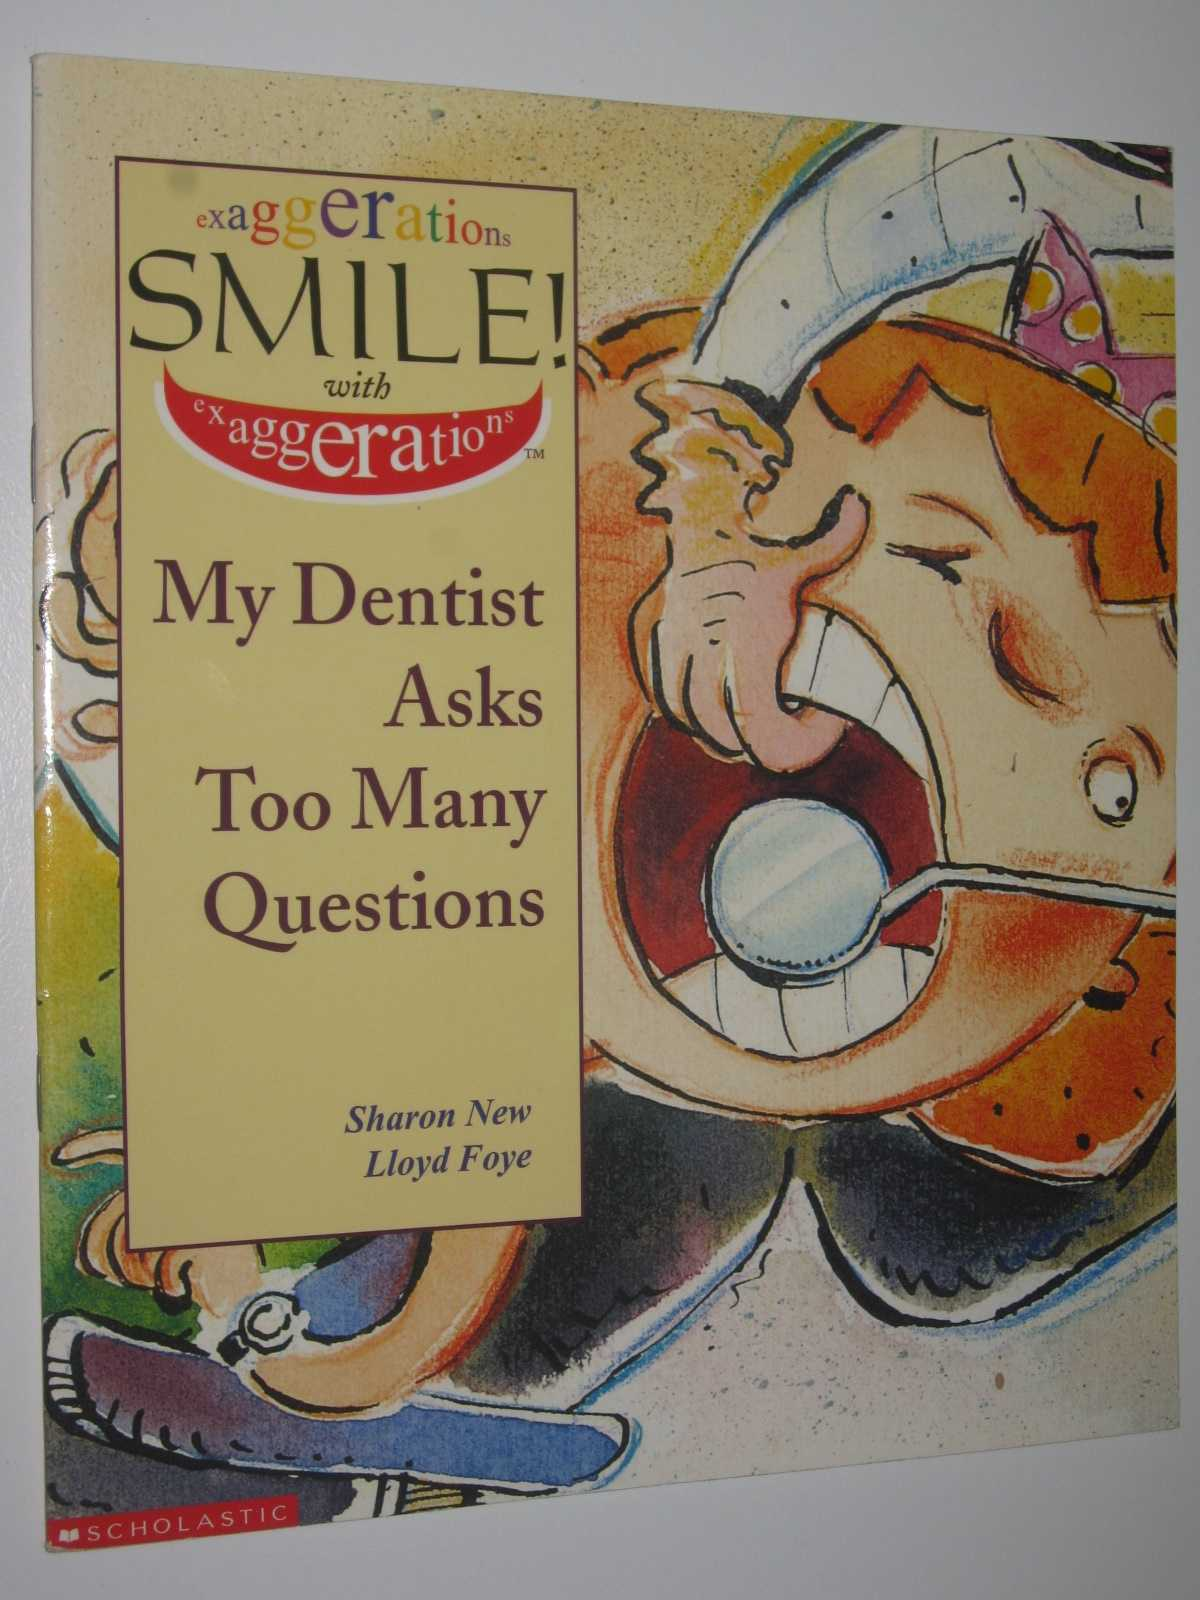 Image for My Dentist Asks Too Many Questions - Exaggerations Set 1 Series #9